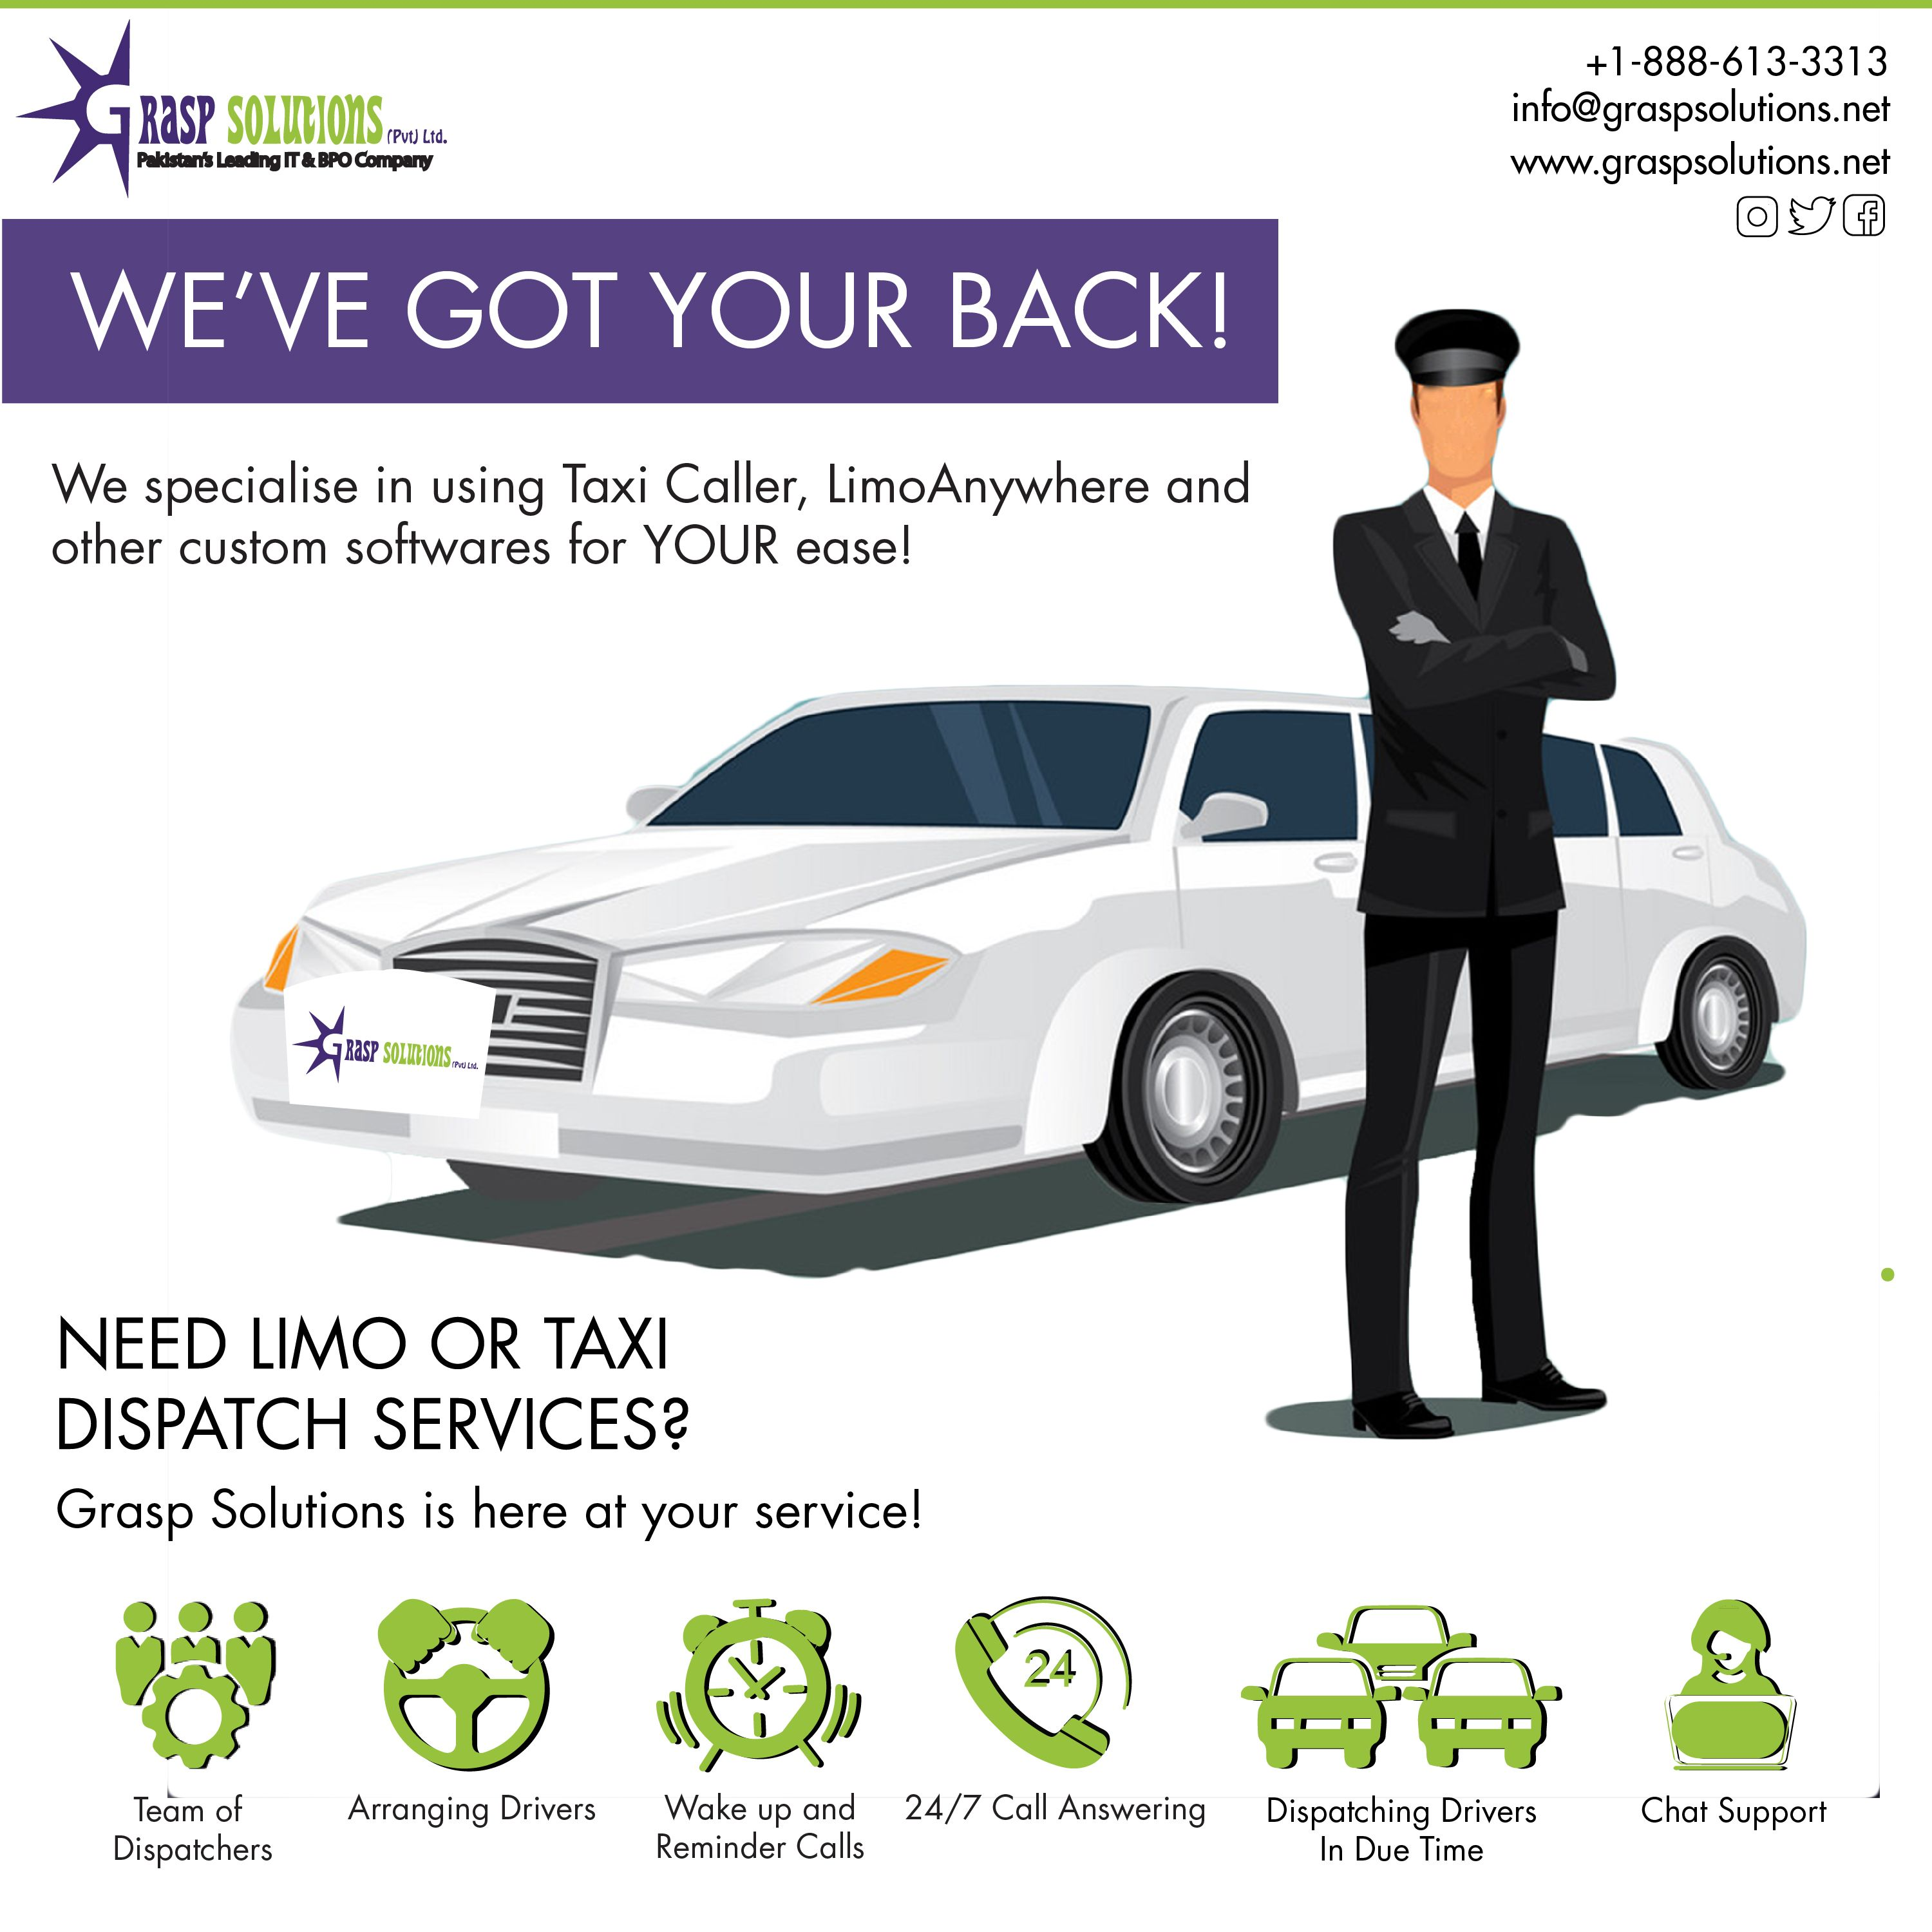 Choose The Best Dispatch And Call Answering Service For Your